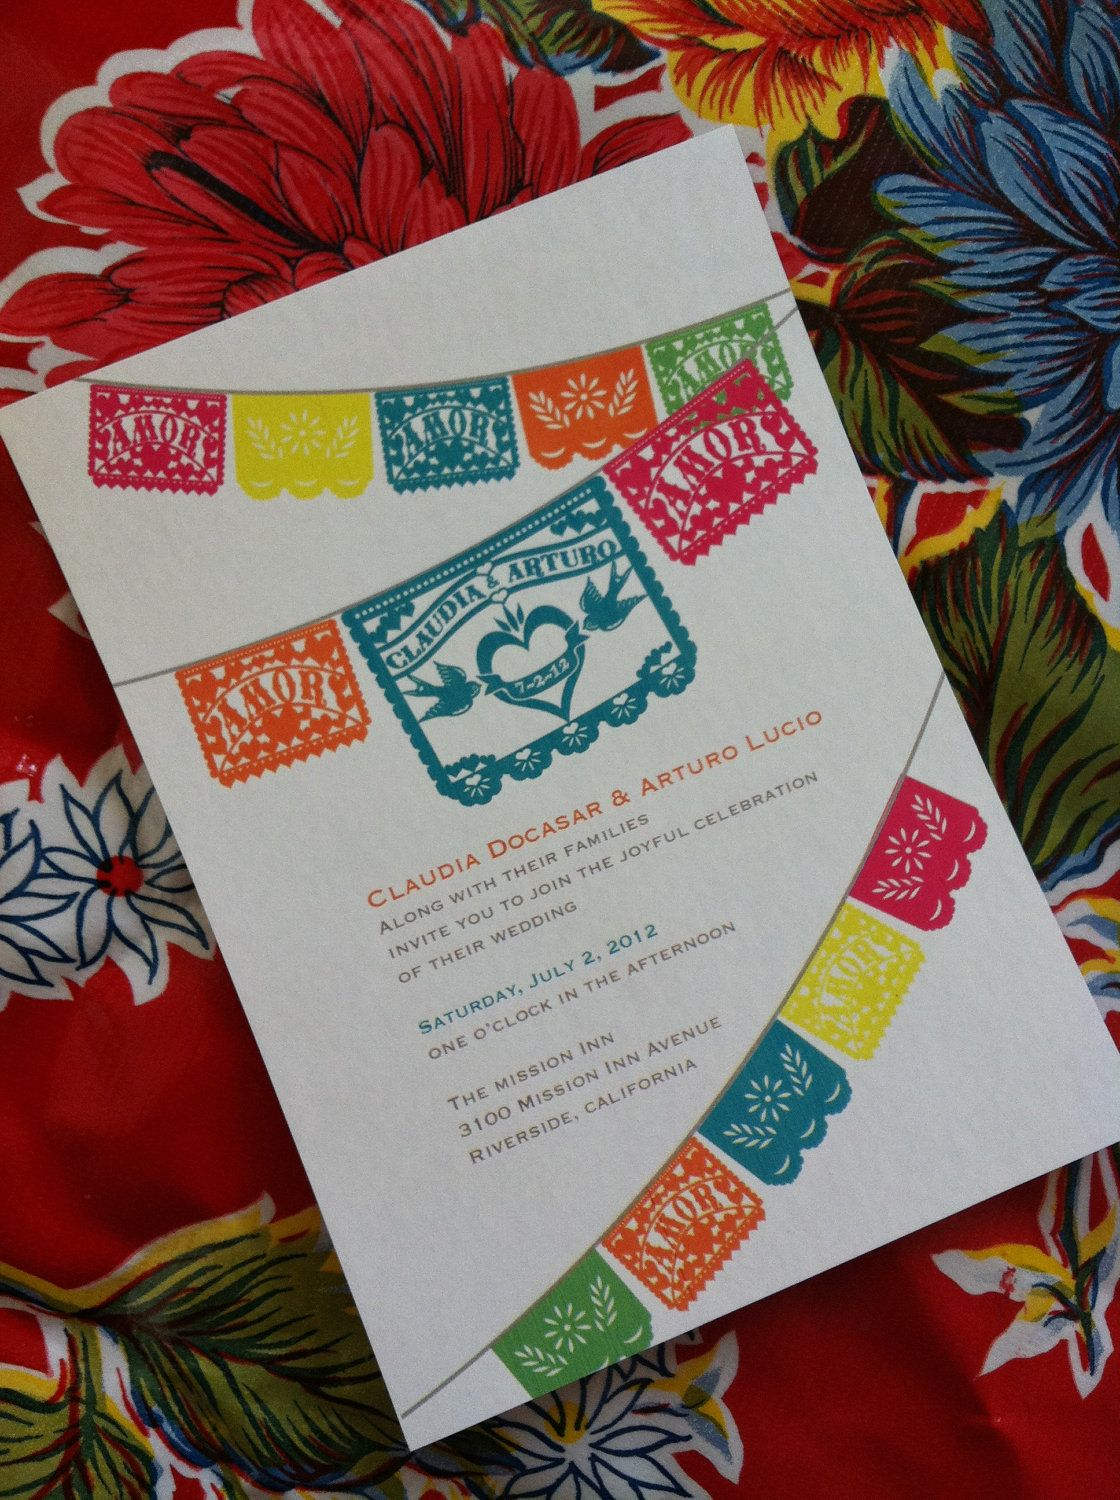 a431e358b037 Love Birds Papel Picado Fiesta Wedding Invitation and Response RSVP cards I  design you print- like the bunting idea for the service of blessing invites